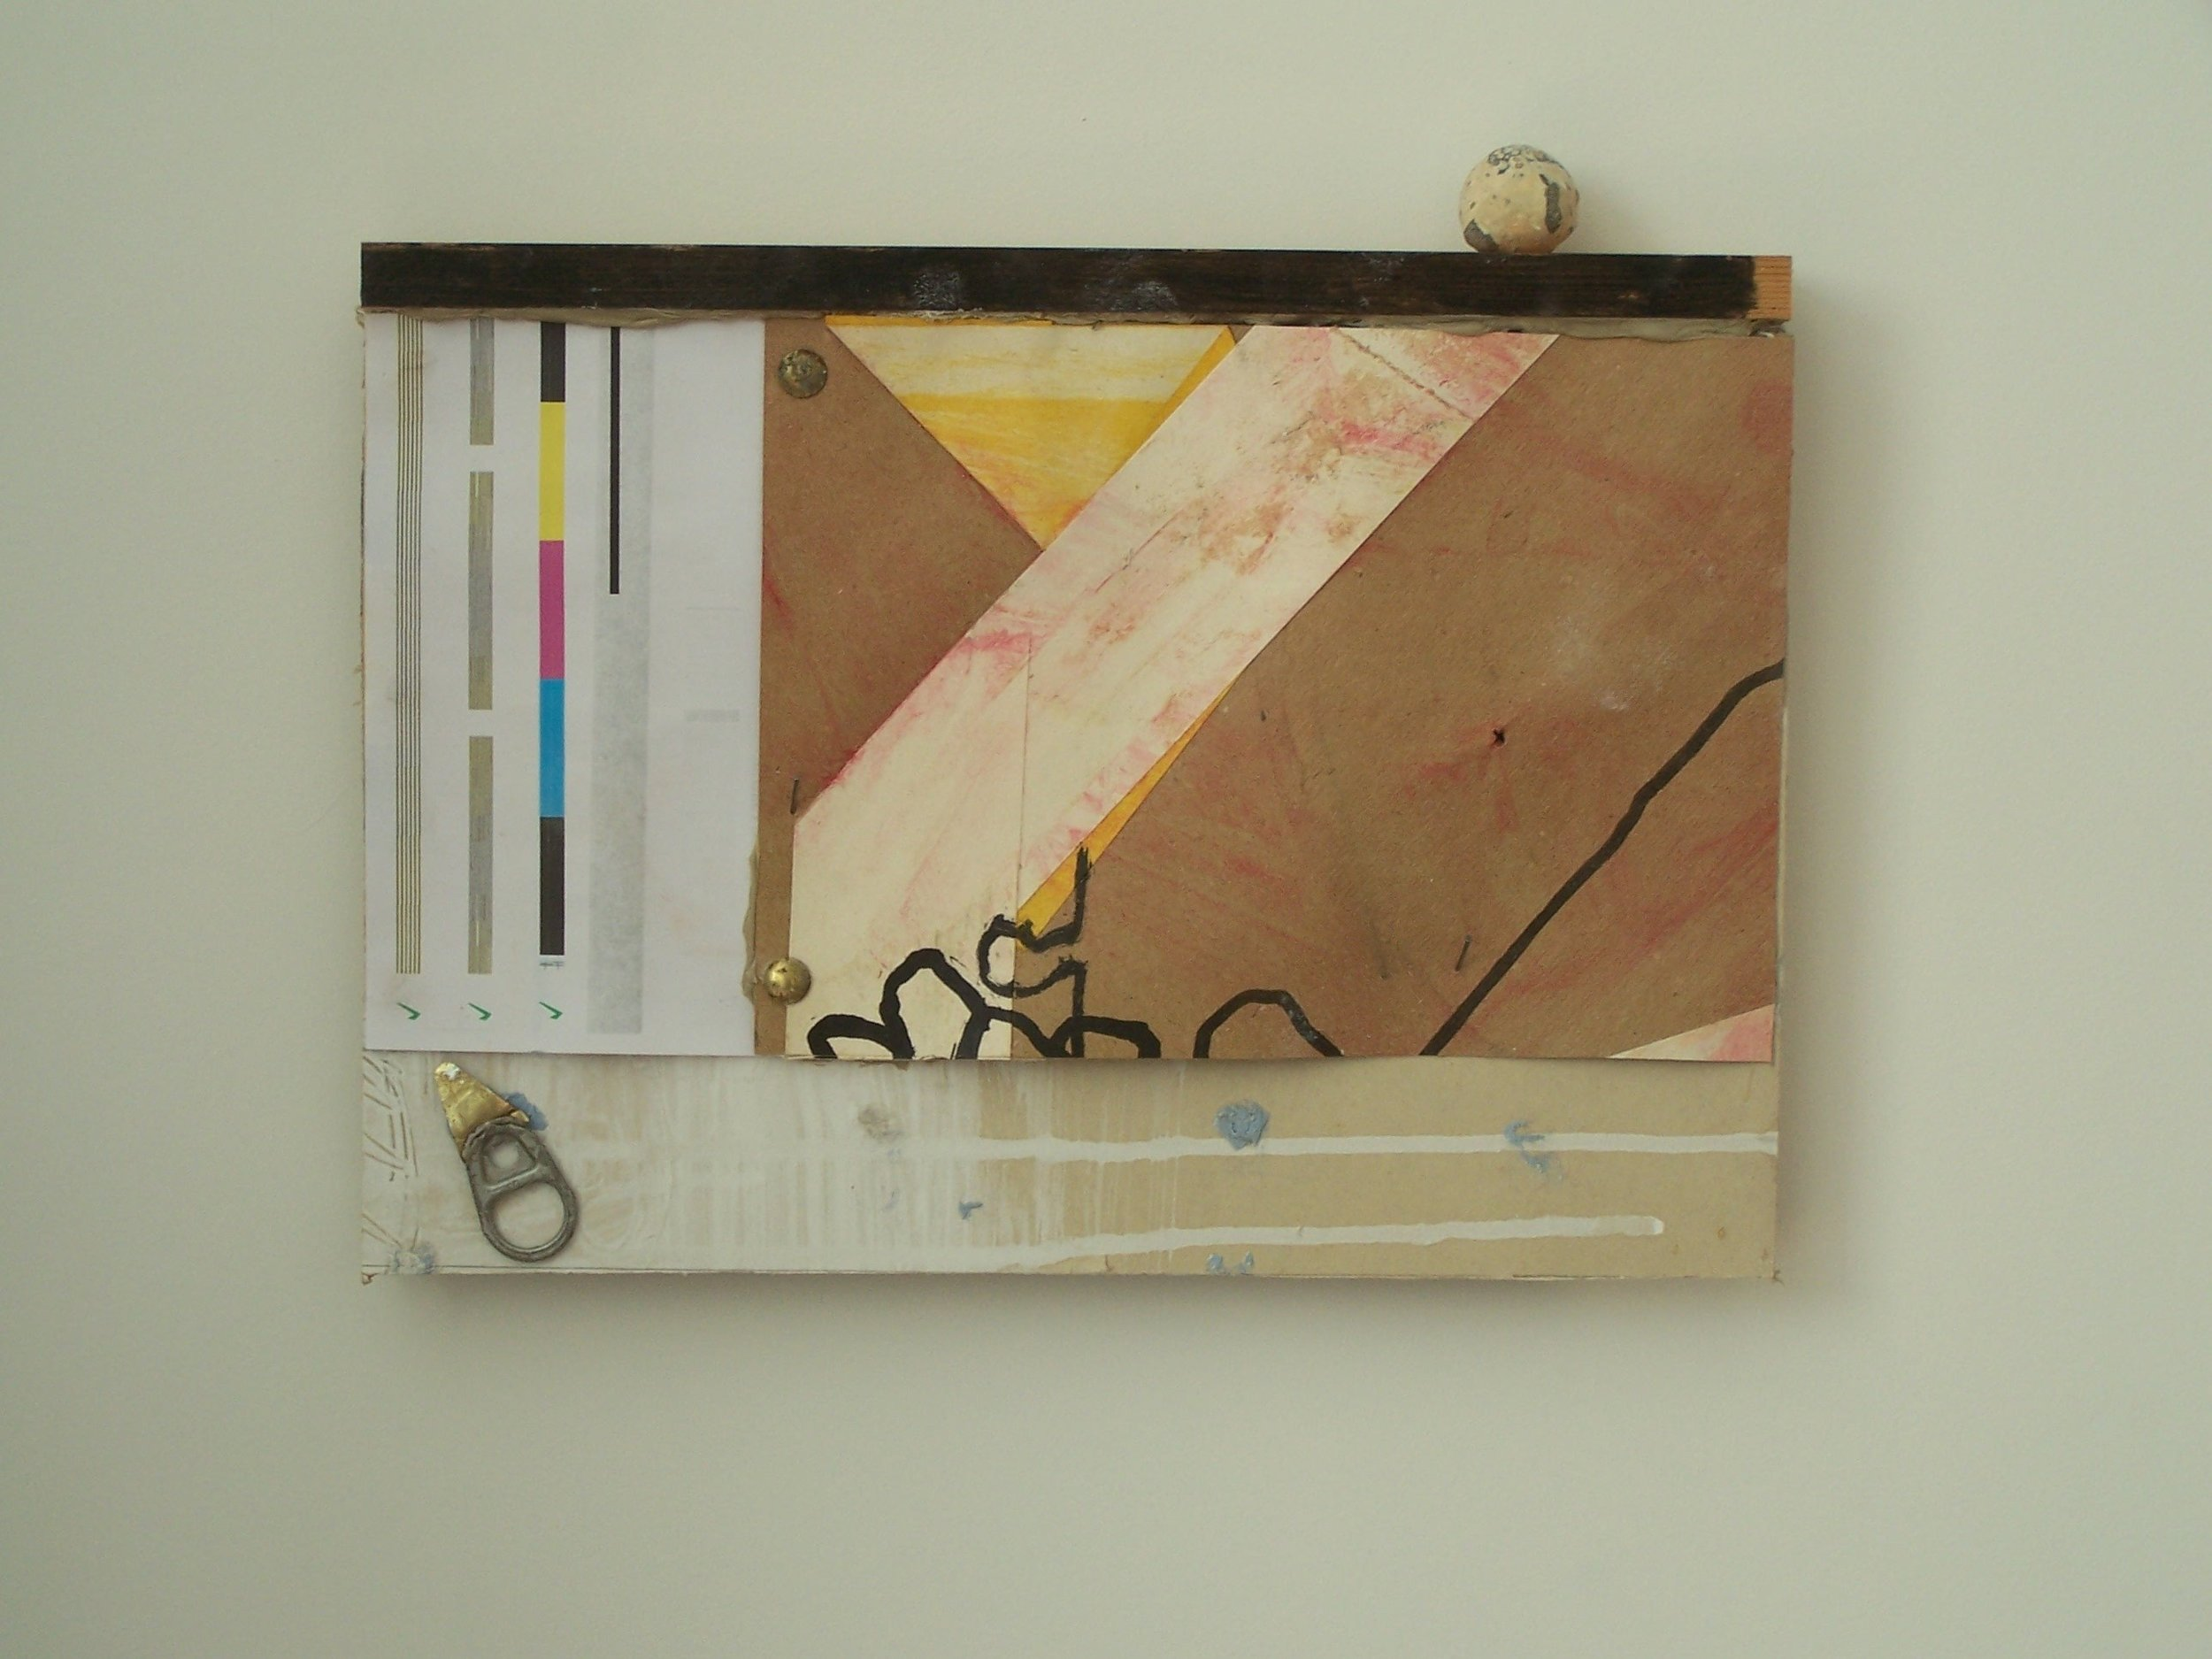 Ashley West. Piece with upper yellow triangle. Mixed media on plaster board. 33 x 23 cm. 2012..JPG